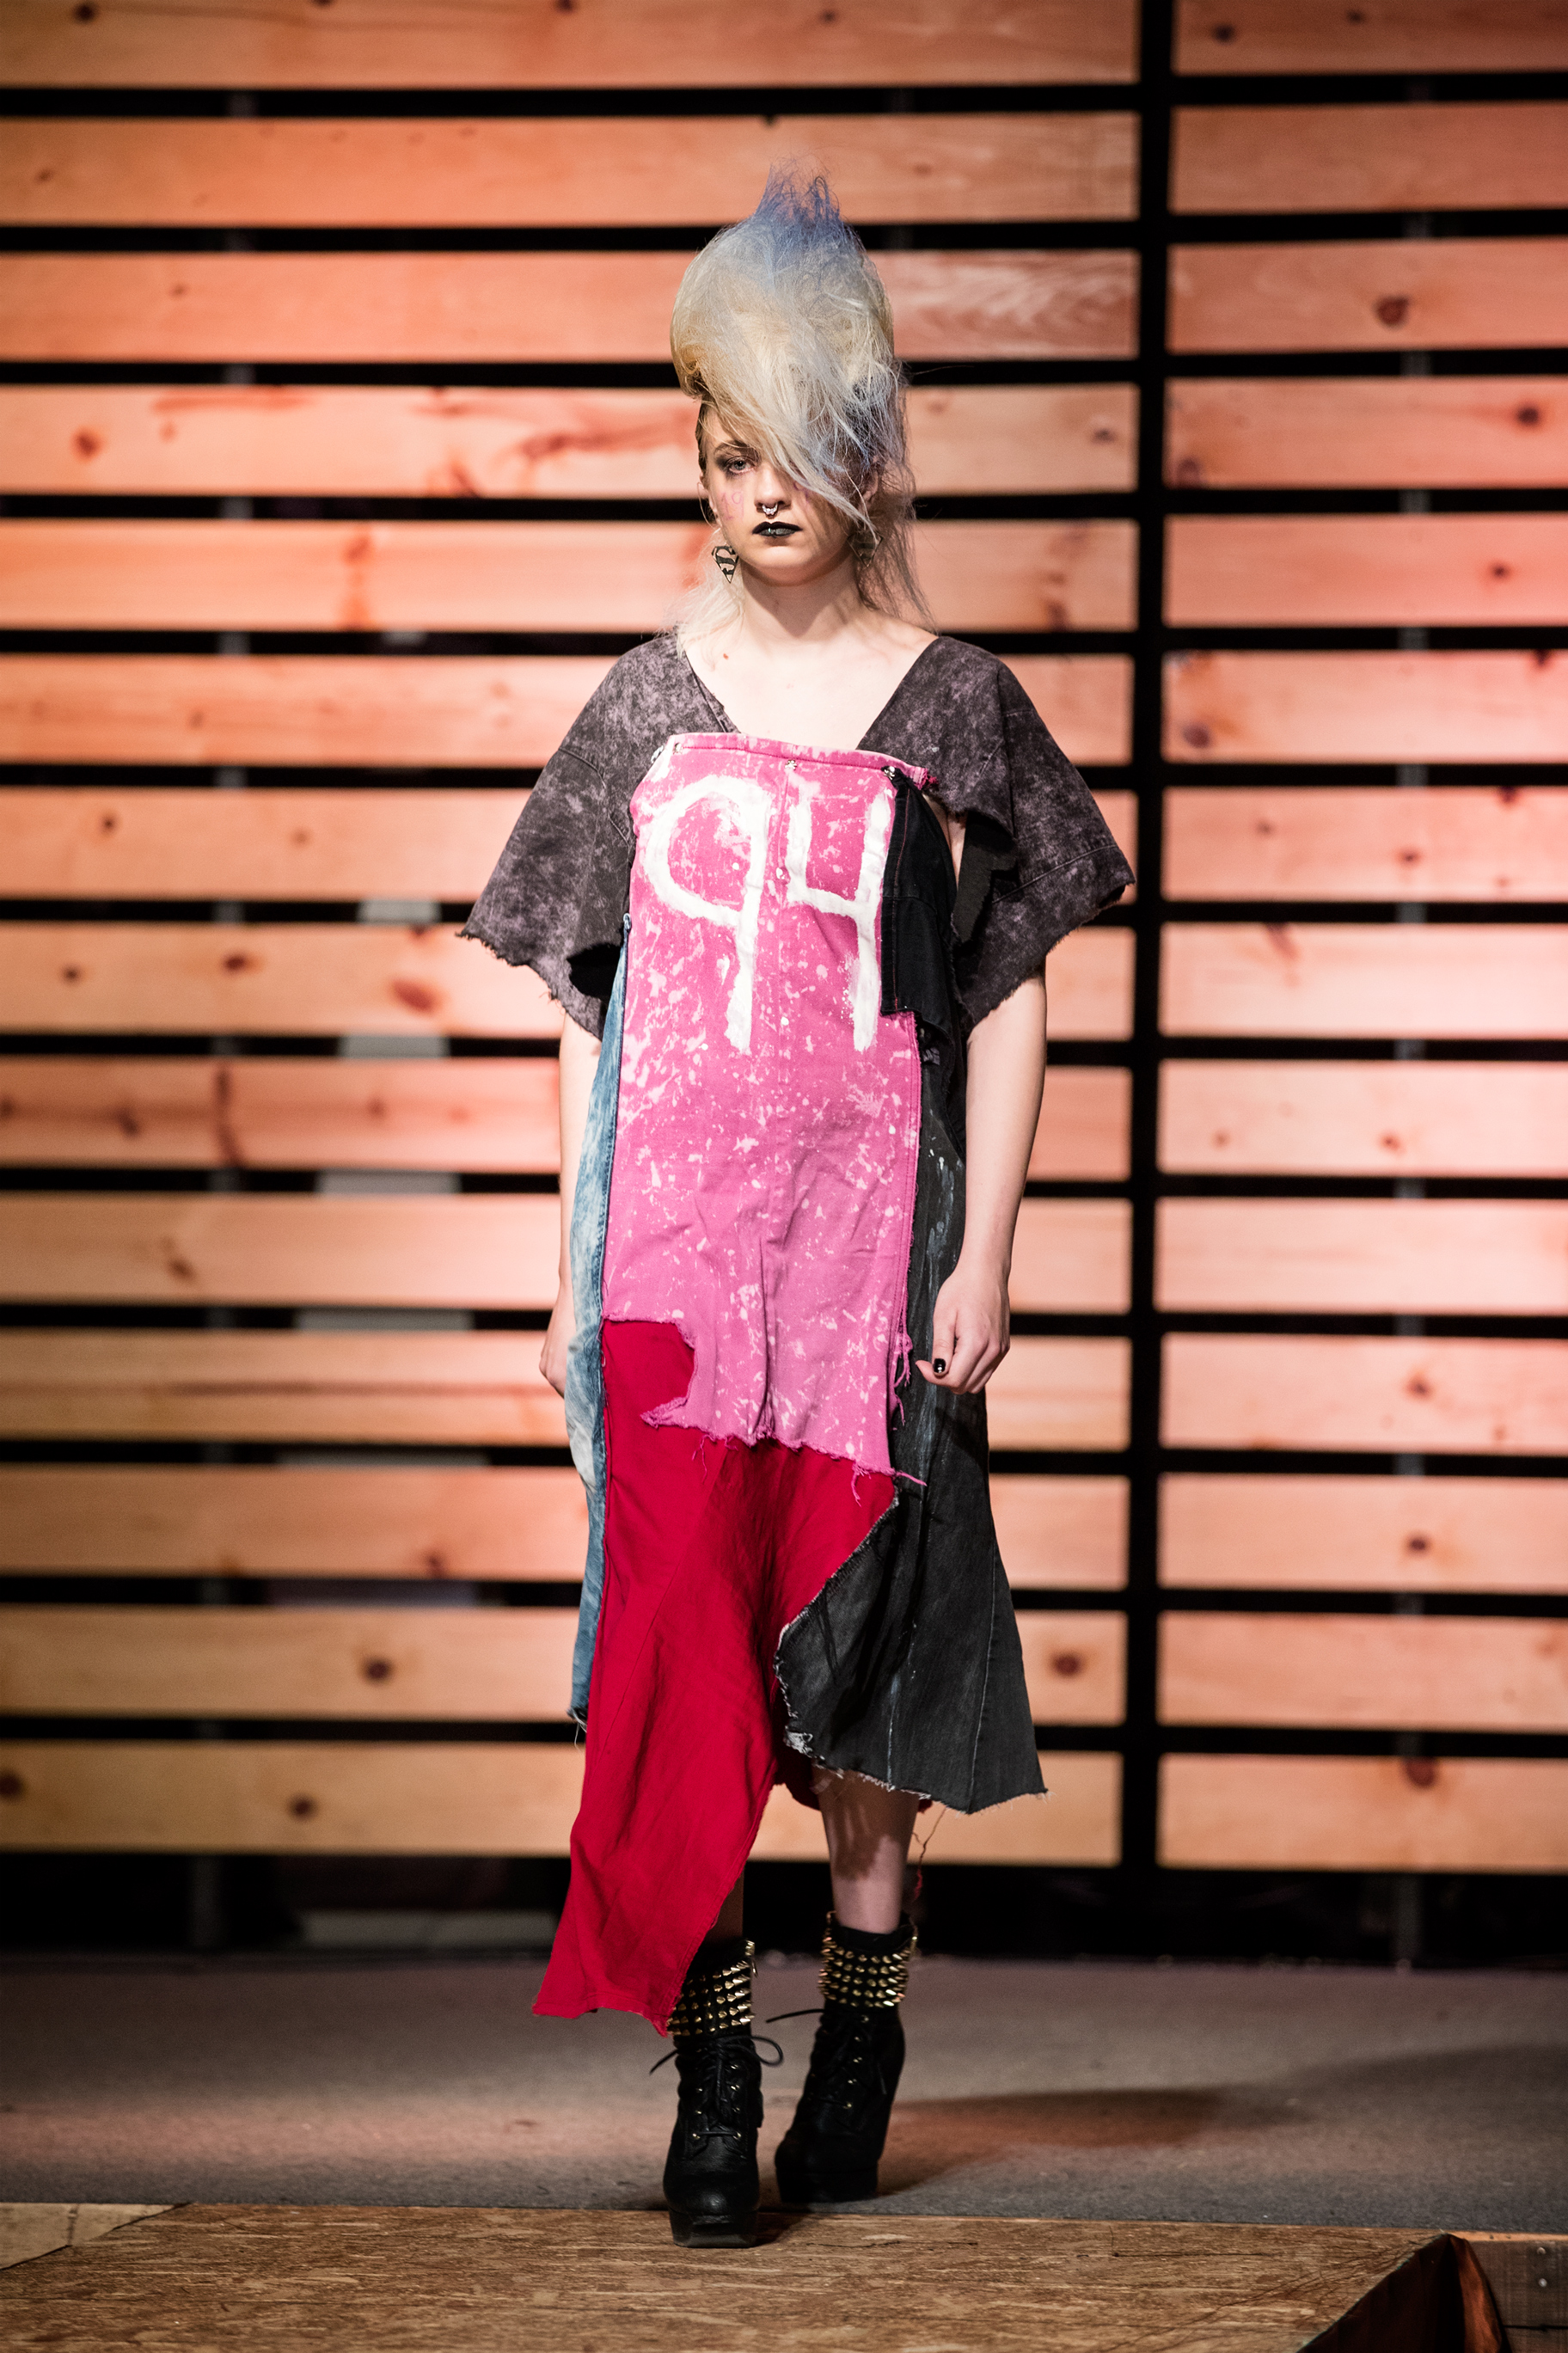 Mission Wear Upcycled Patchwork Fashion Show - 077.jpg